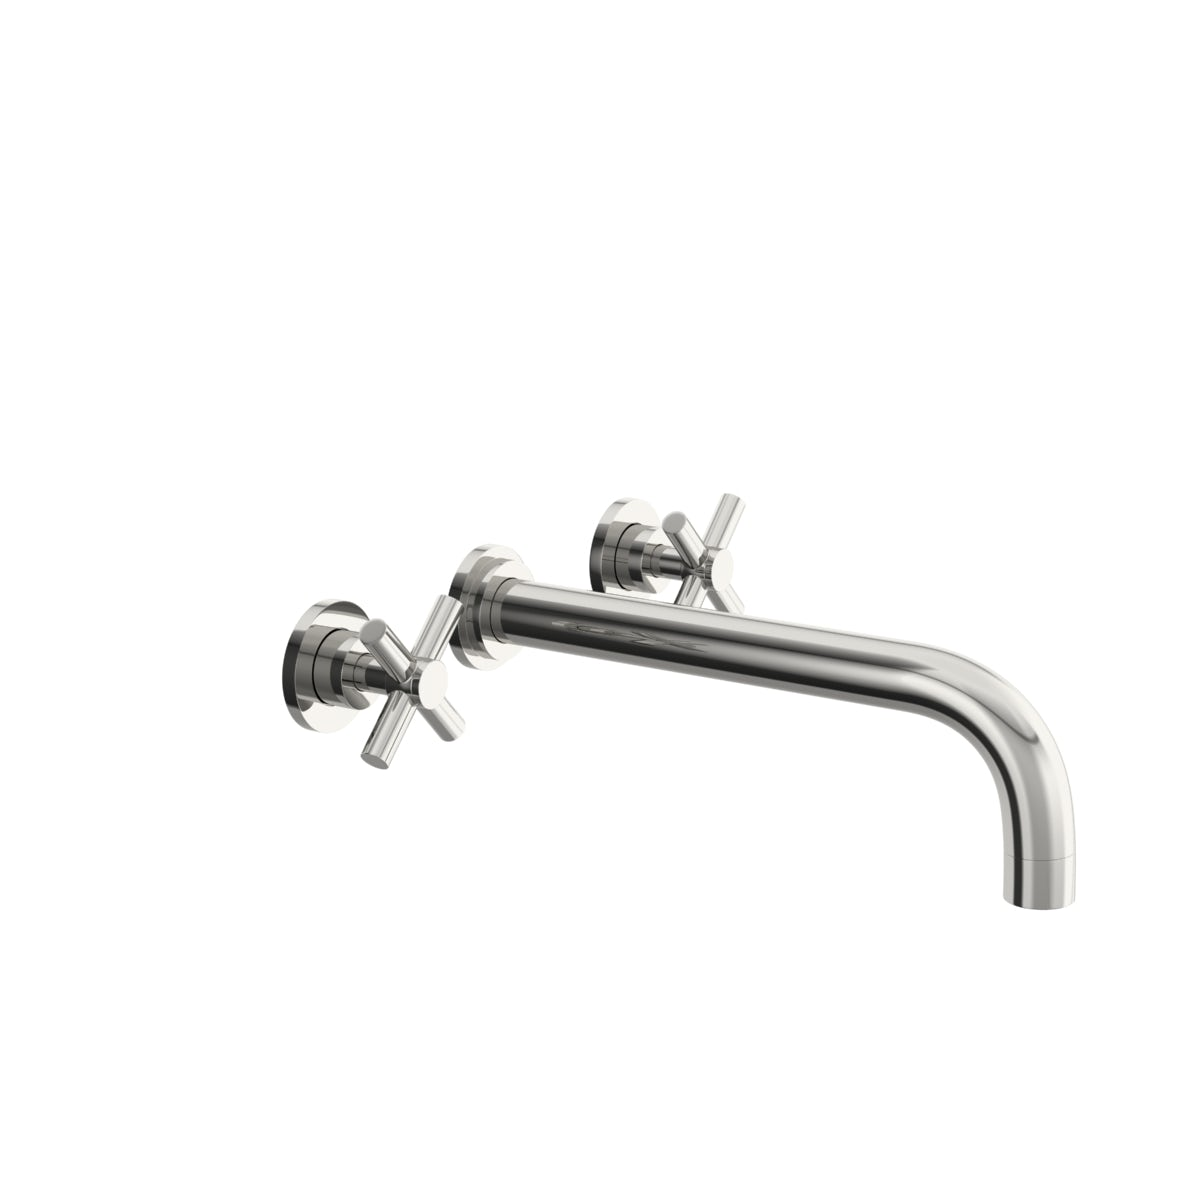 Wall Mounted Taps Guide | VictoriaPlum.com